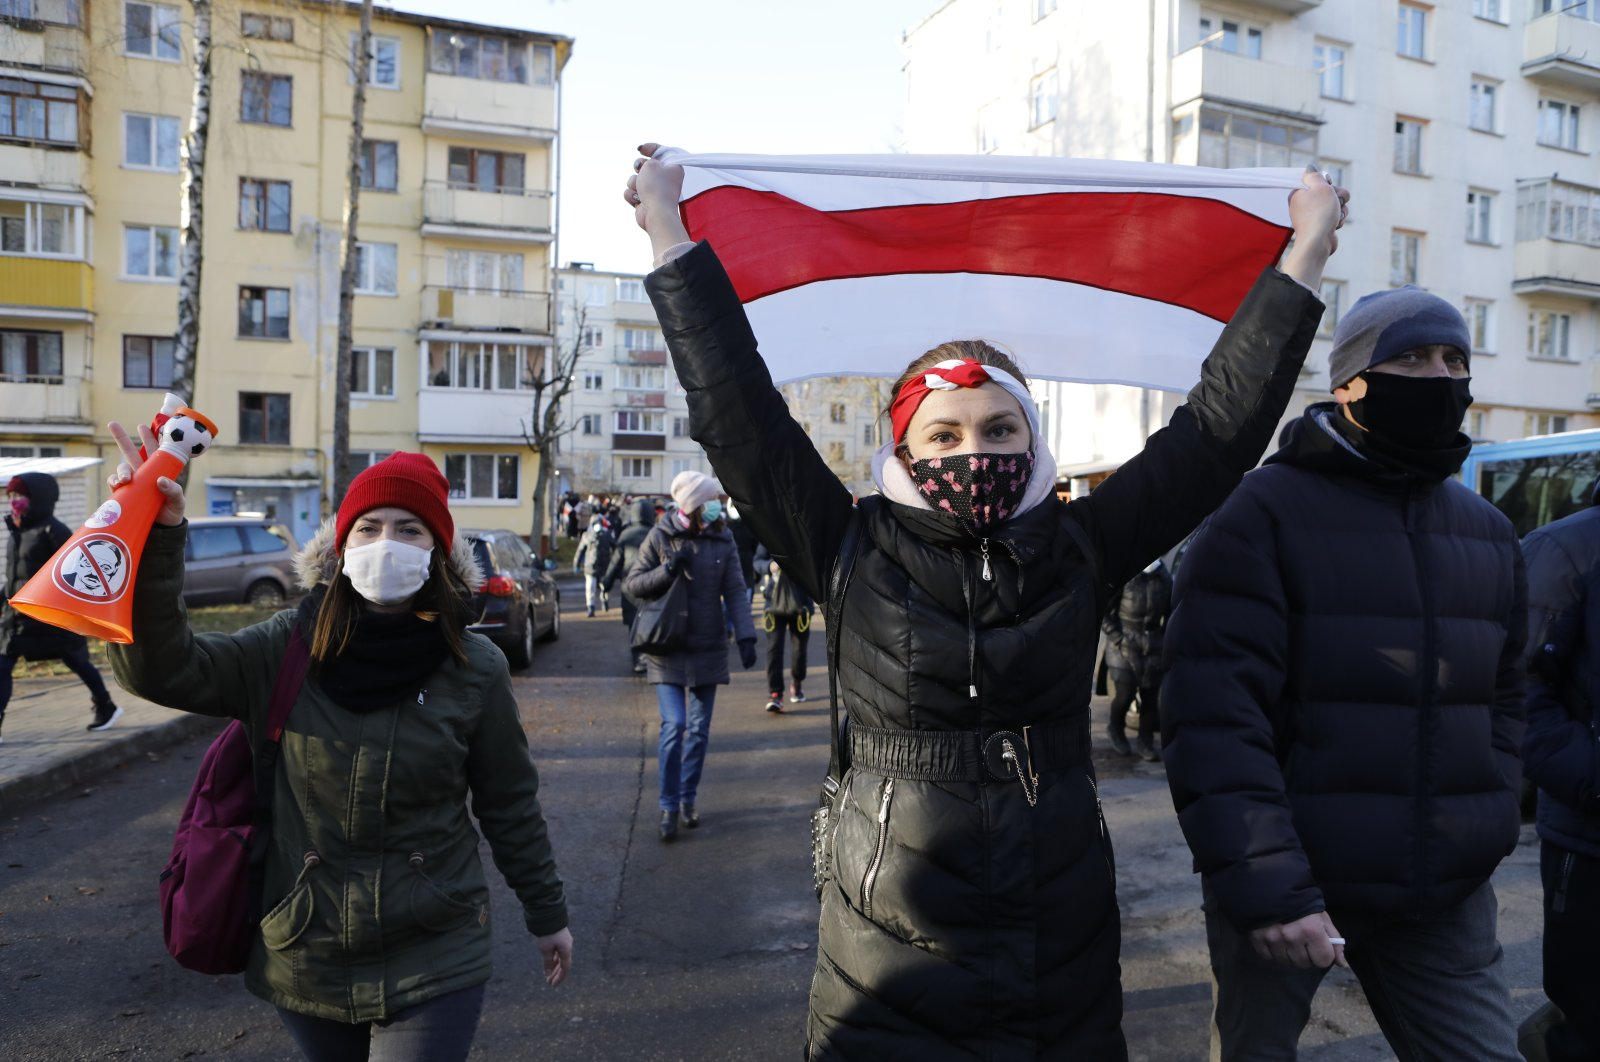 Demonstrators wearing face masks to help curb the spread of the coronavirus, at right one waves an old Belarusian national flag, during an opposition rally to protest the official presidential election results in Minsk, Belarus, Sunday, Dec. 6, 2020. (AP photo)